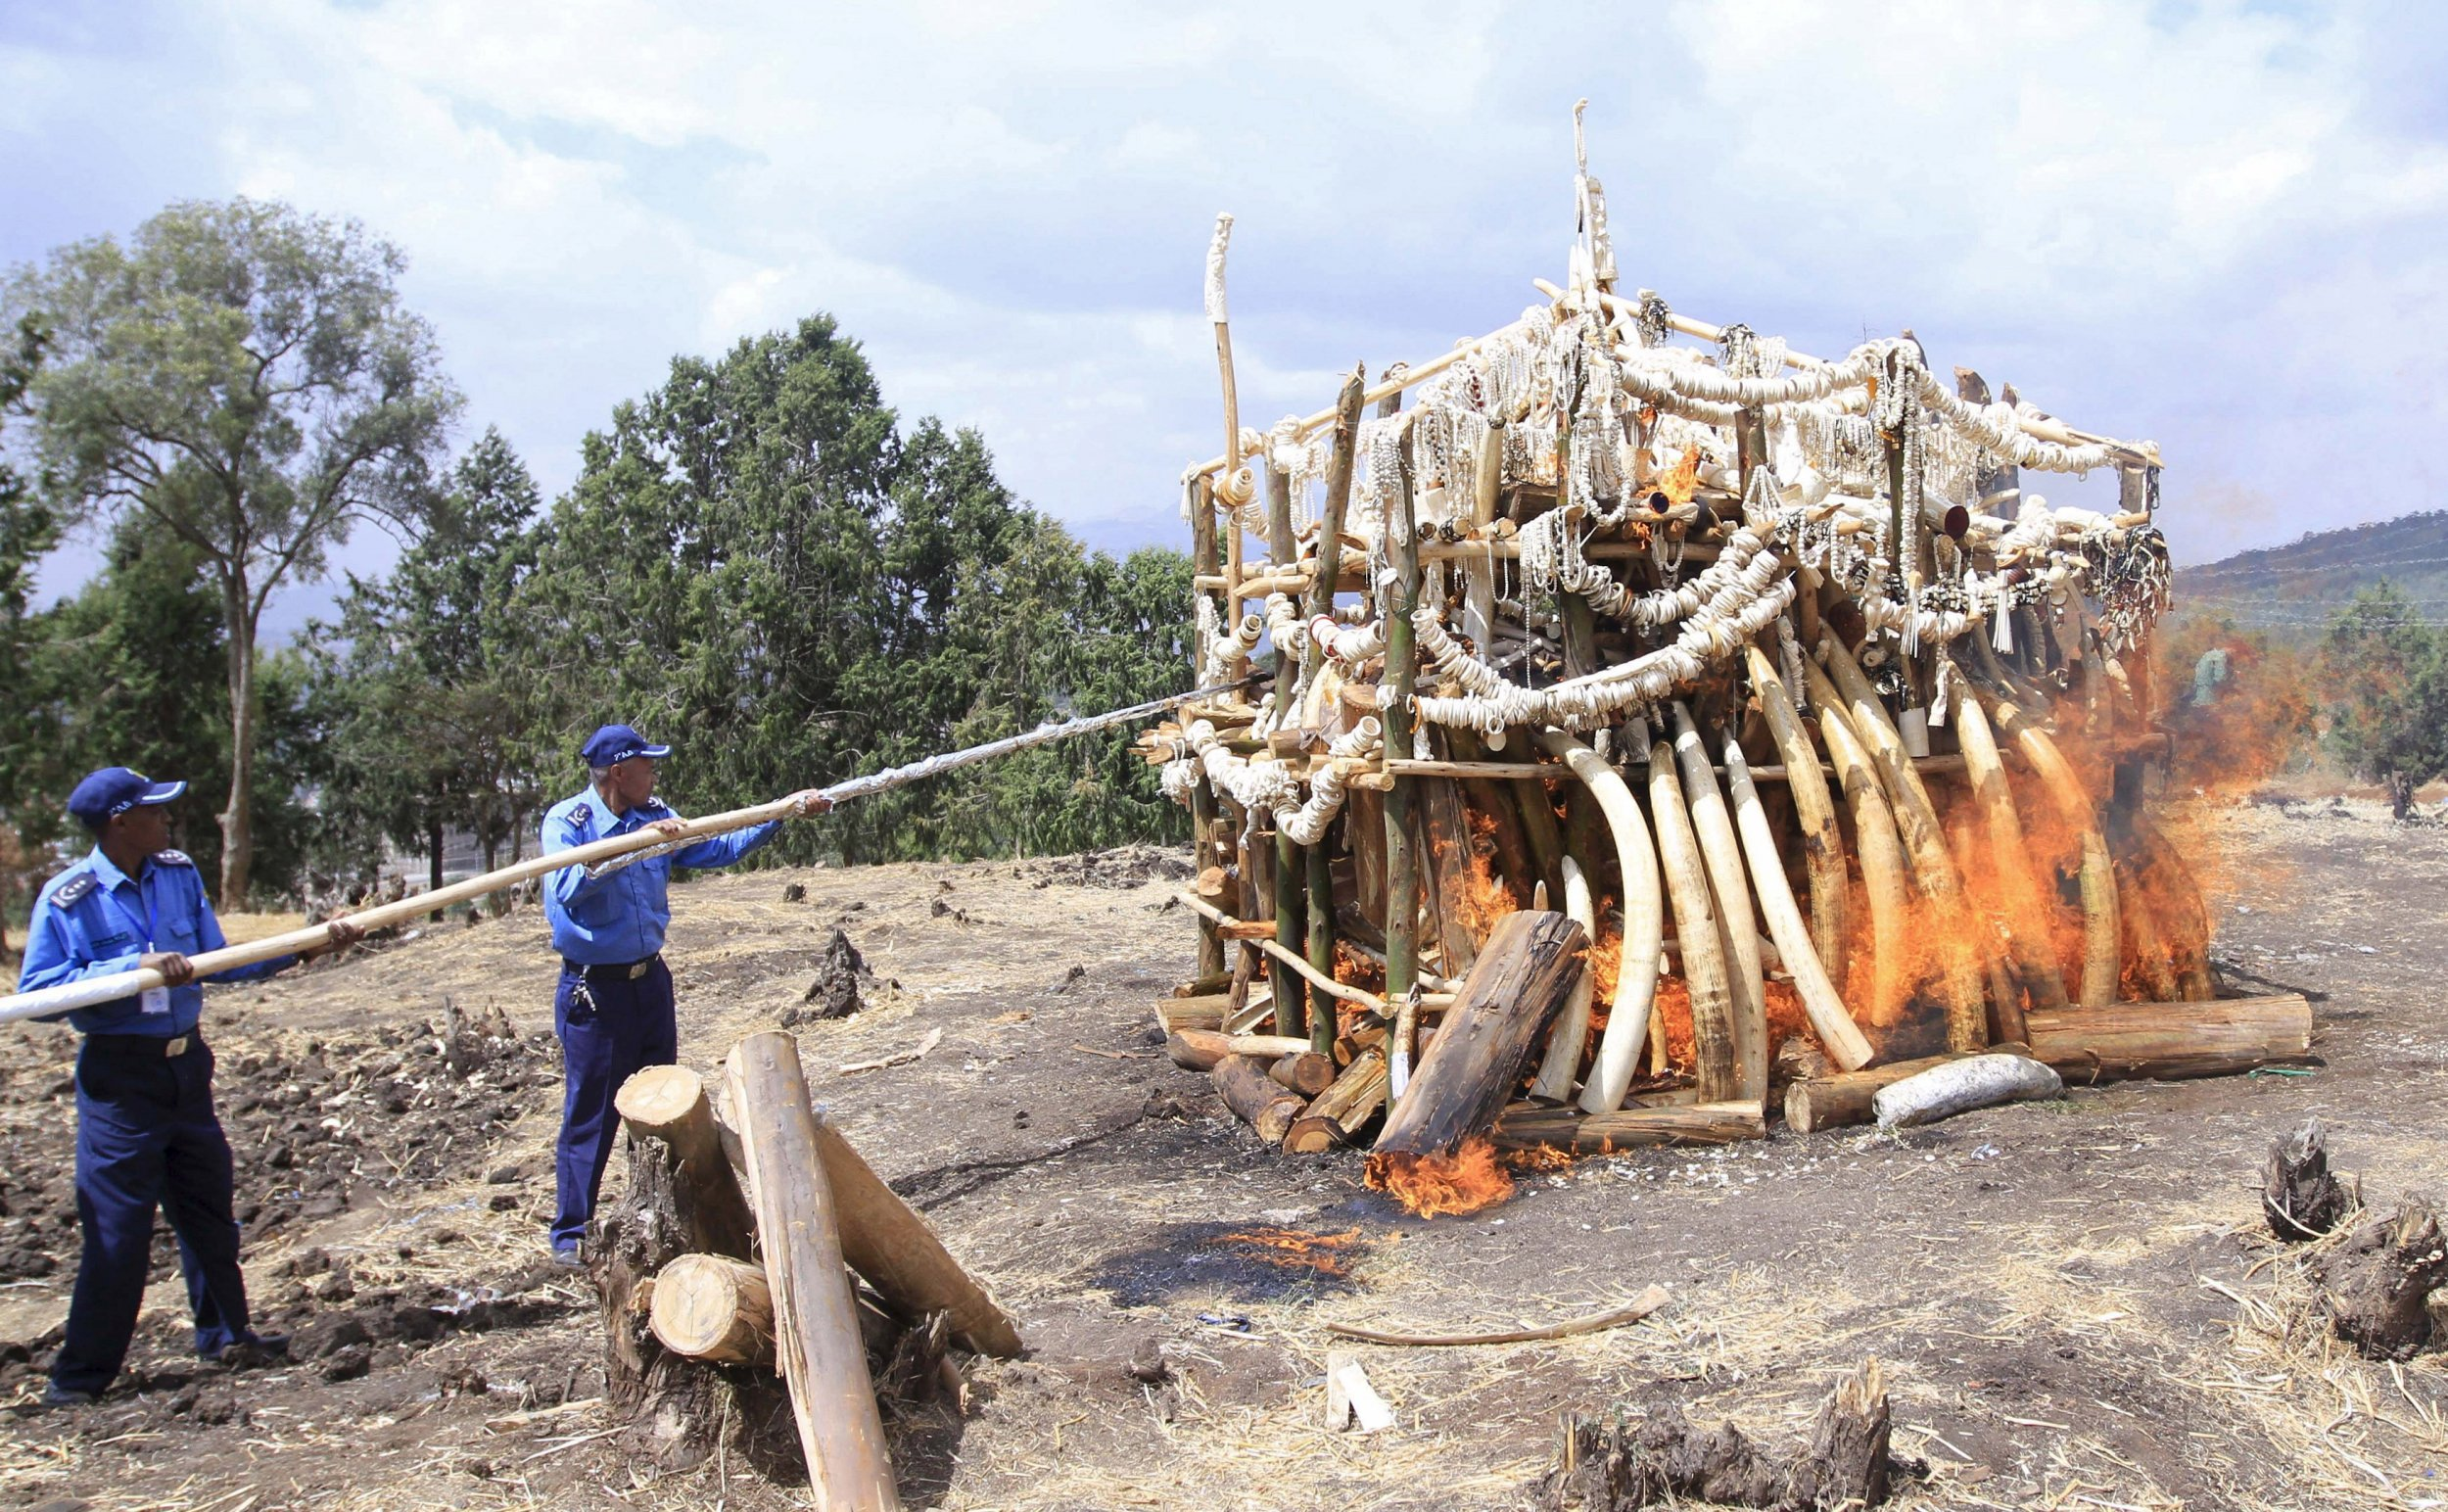 6.1 tonnes of ivory is set alight in Ethiopia's capital Addis Ababa.